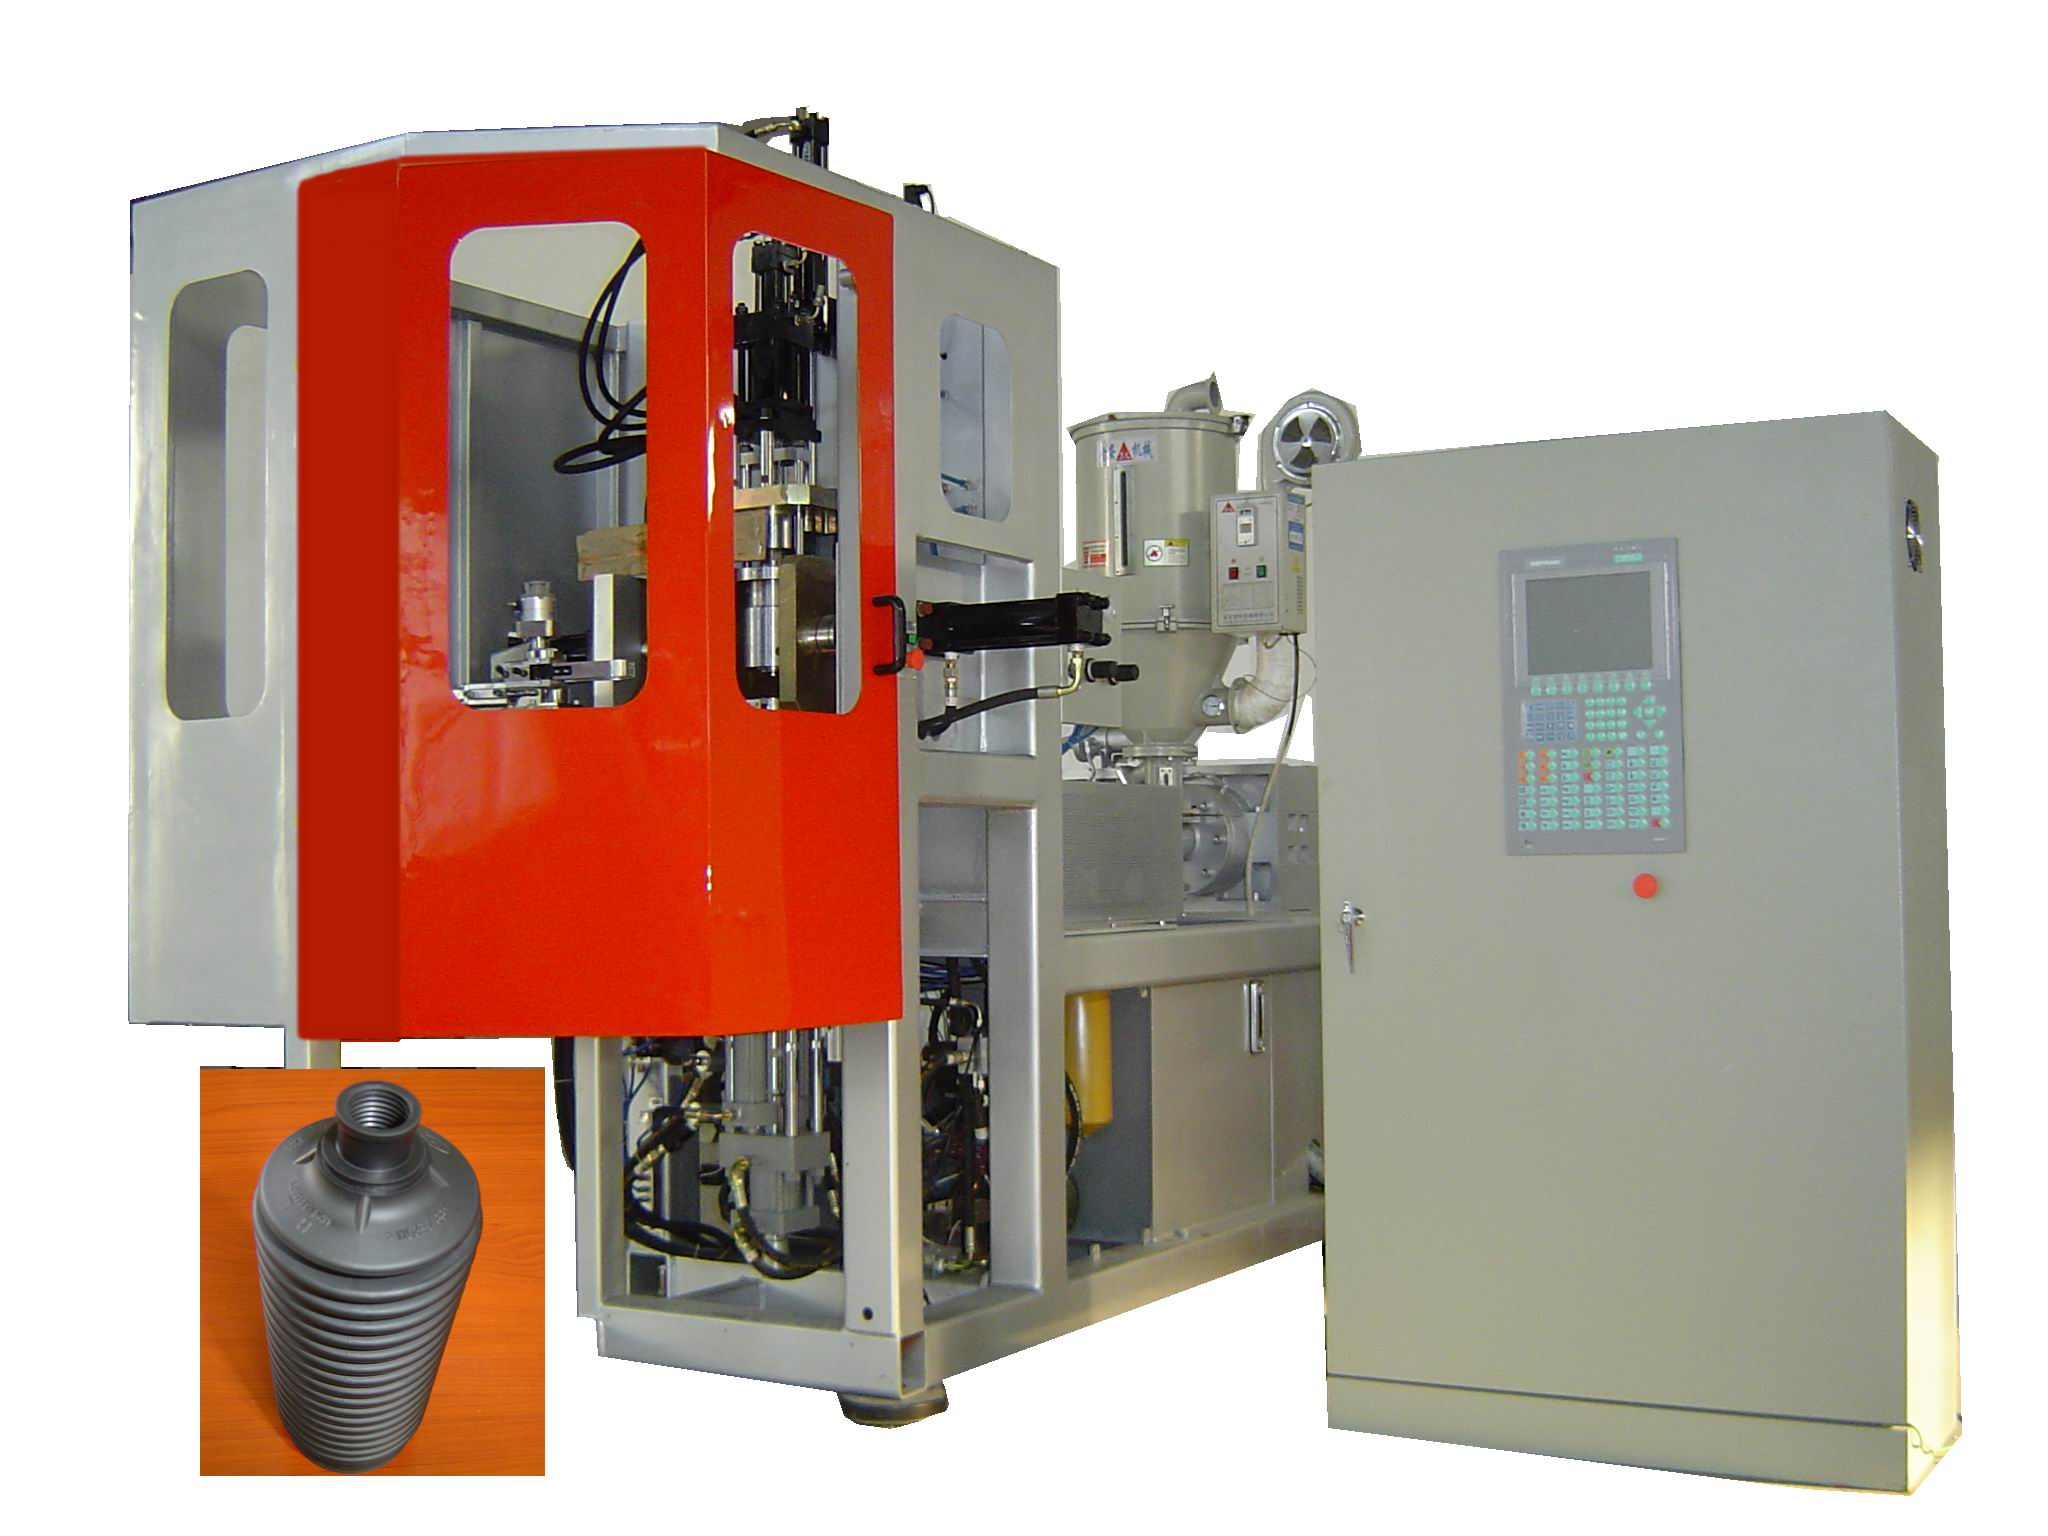 Special TPEE Injection Blow Molding Machine for Automobile CV Joints' Dustproof Covers, CV Boots, Axle Boot Kits